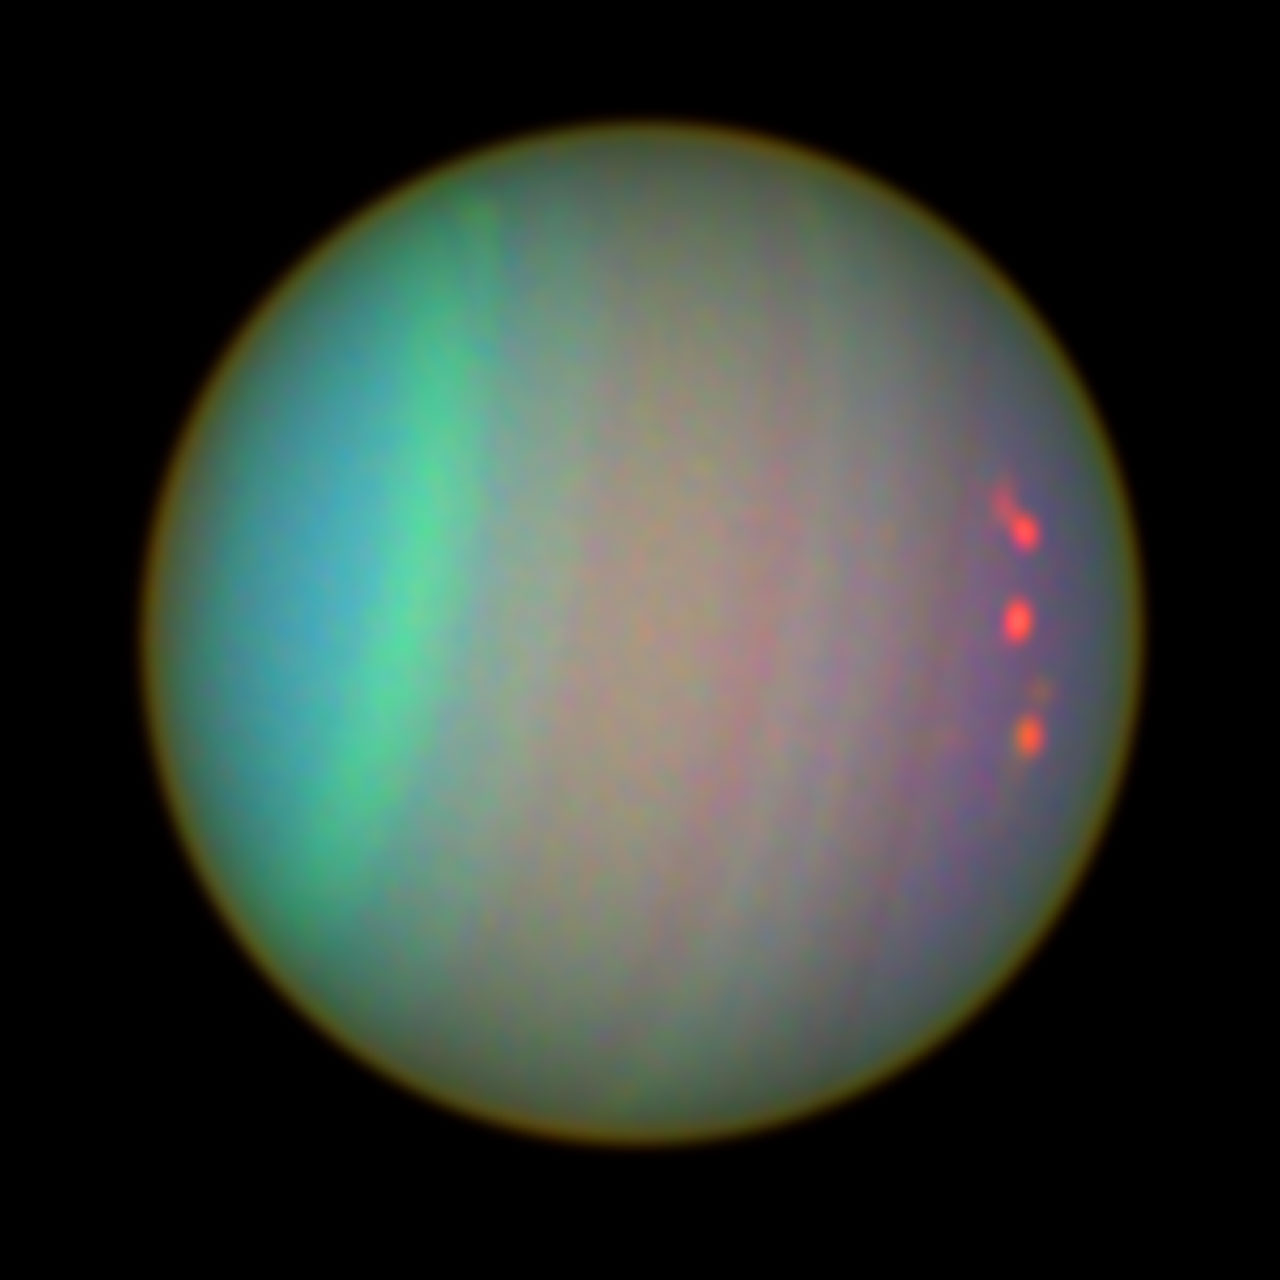 Uranus as Seen with colour Filters | ESA/Hubble